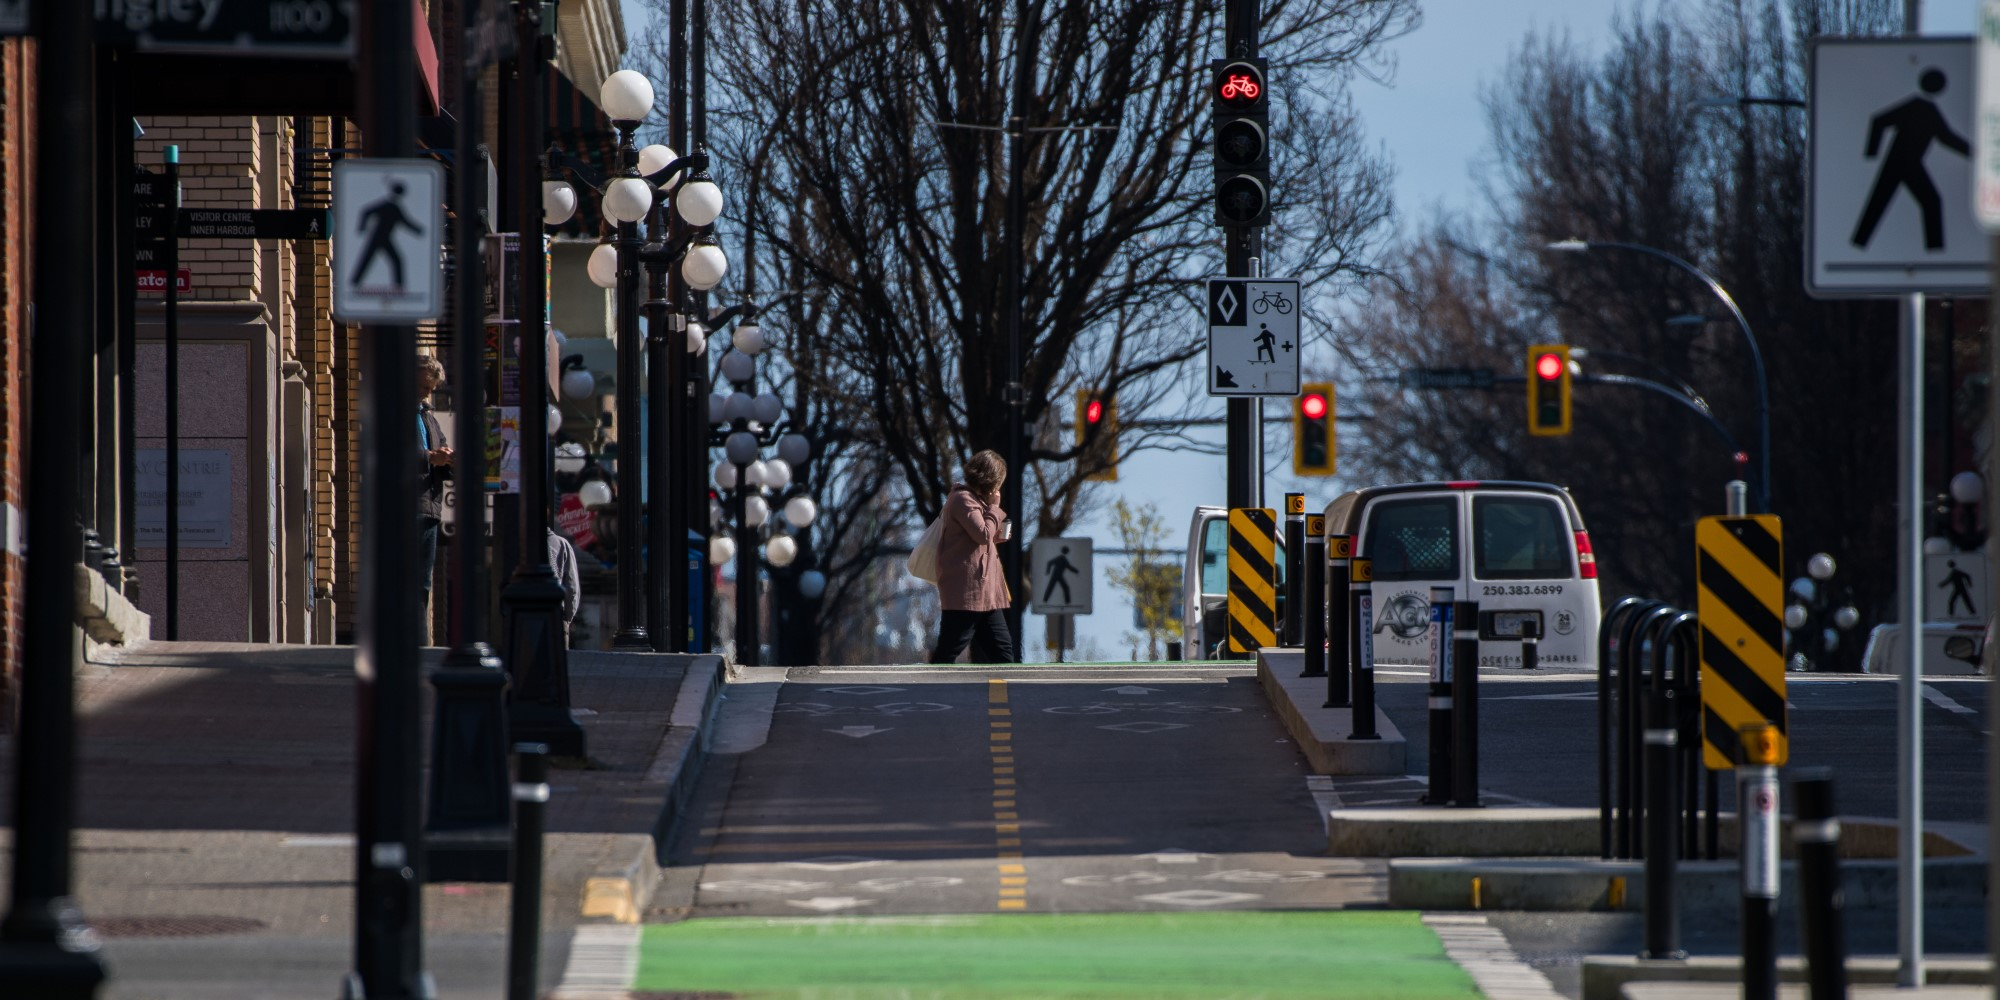 Limit Cars in Beacon Hill, More Free Transit, More Gardens: Victoria Sets Out Plans For Life After Reopening